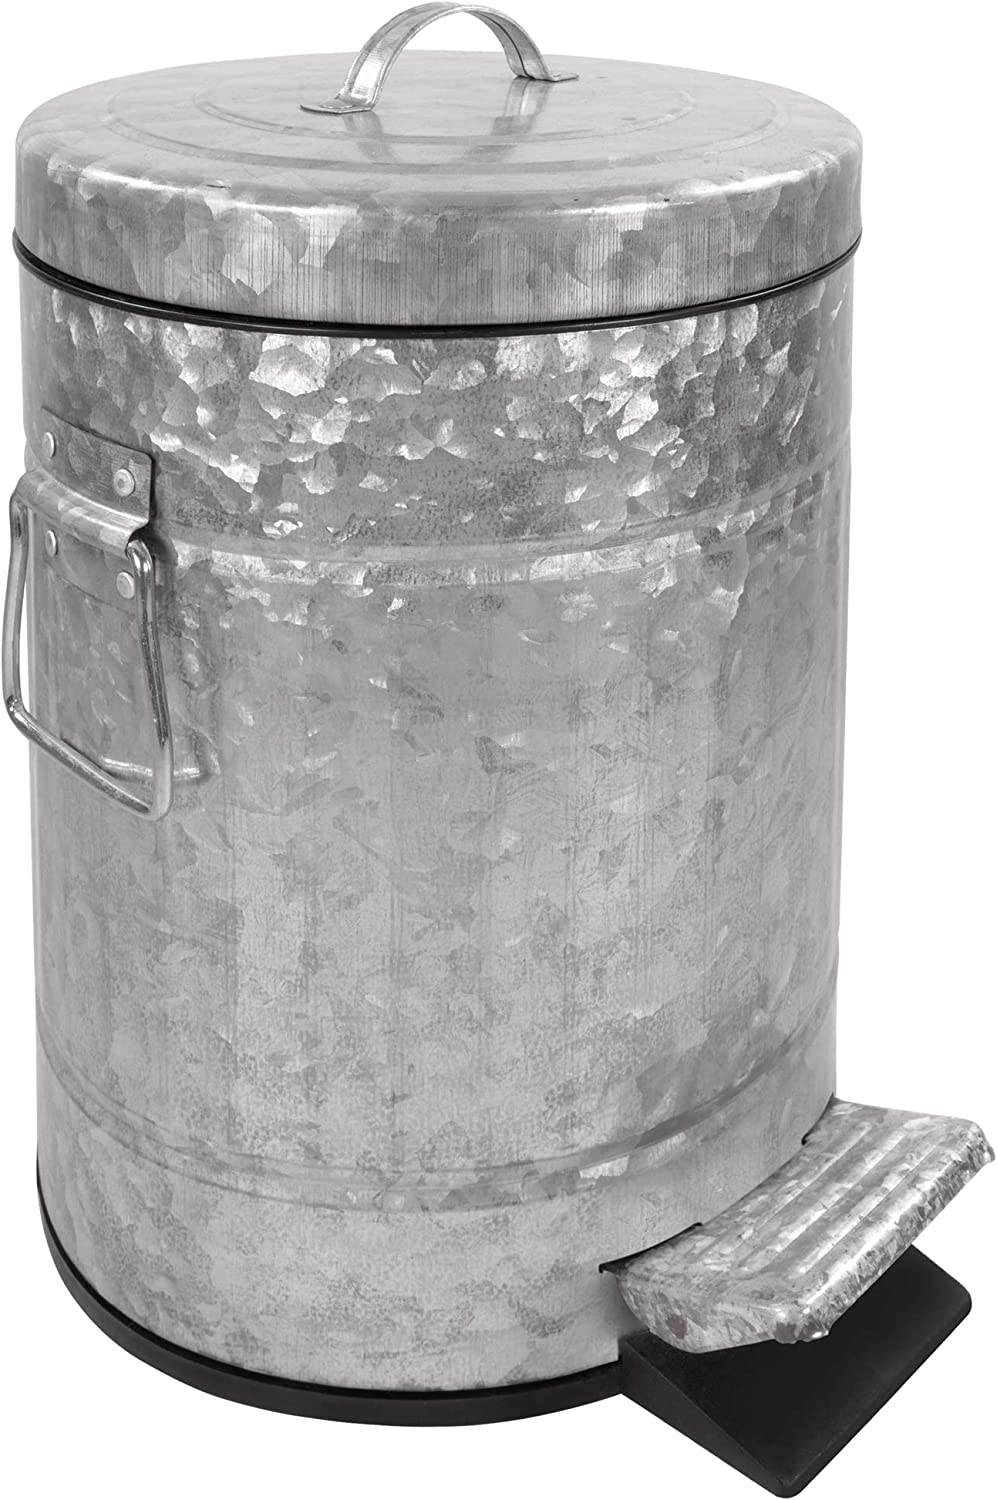 Autumn Alley Galvanized Pedal Waste Bin | Small 5L, 1.3 Gallon Trash Can | Adds Farmhouse Warmth | Perfect Size for Toilet Alcove